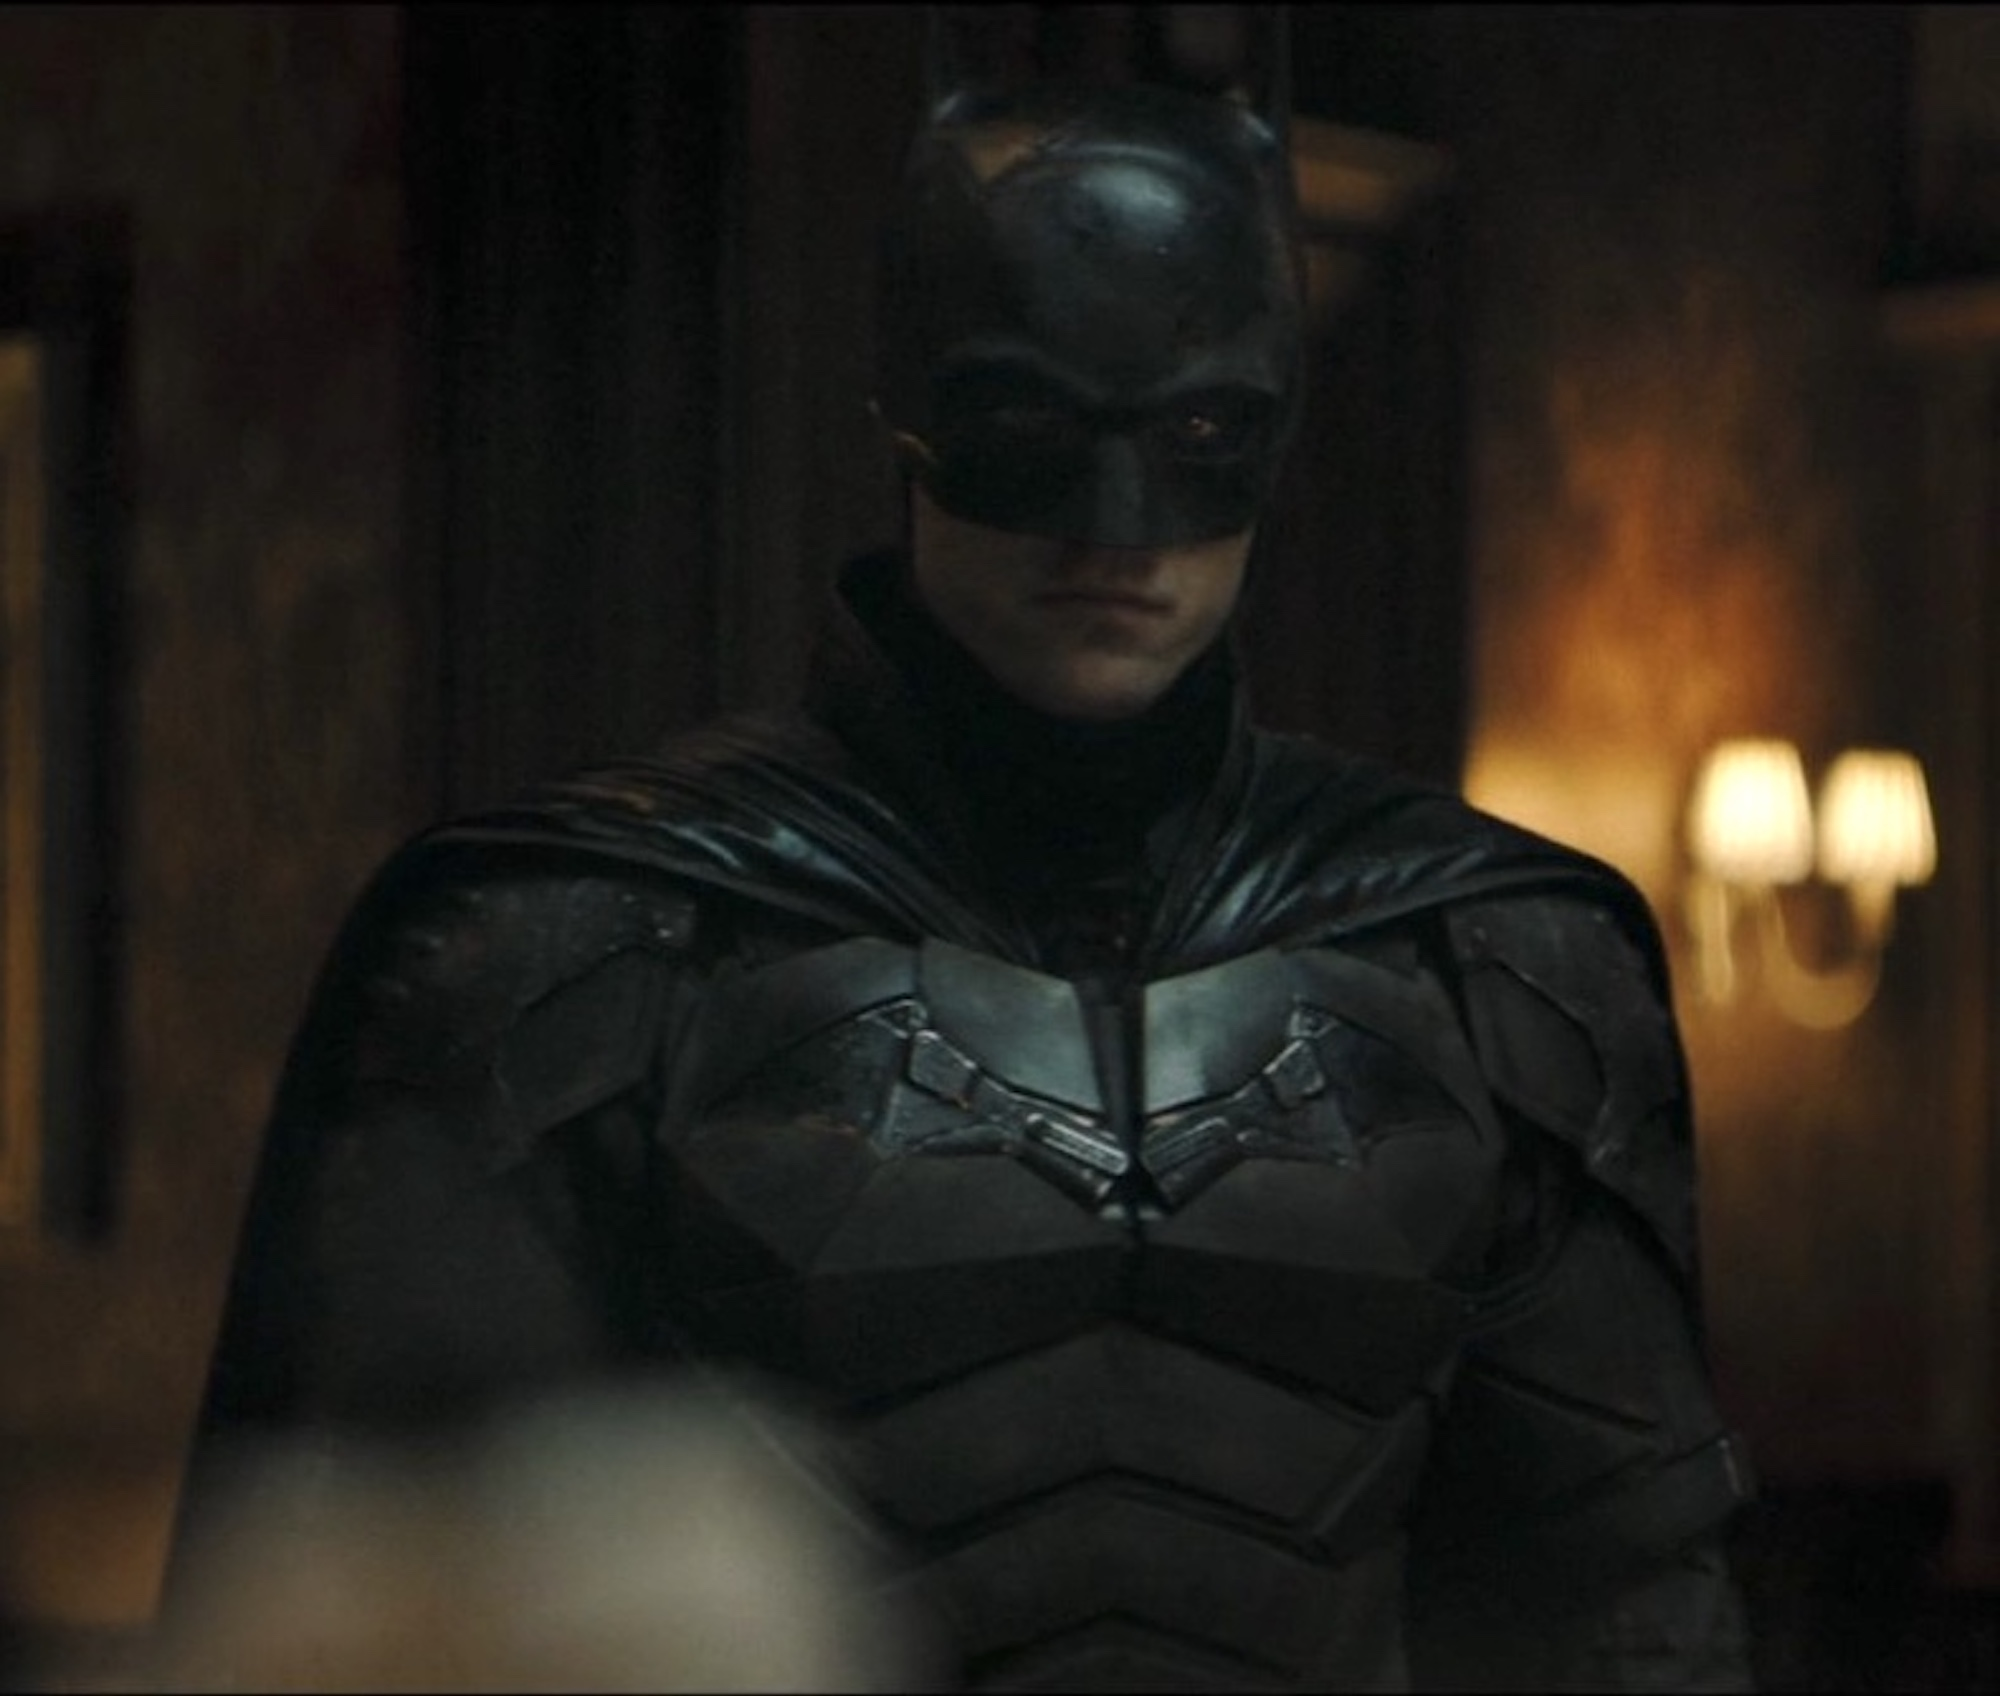 Robert Pattinson in the new Batman trailer suit